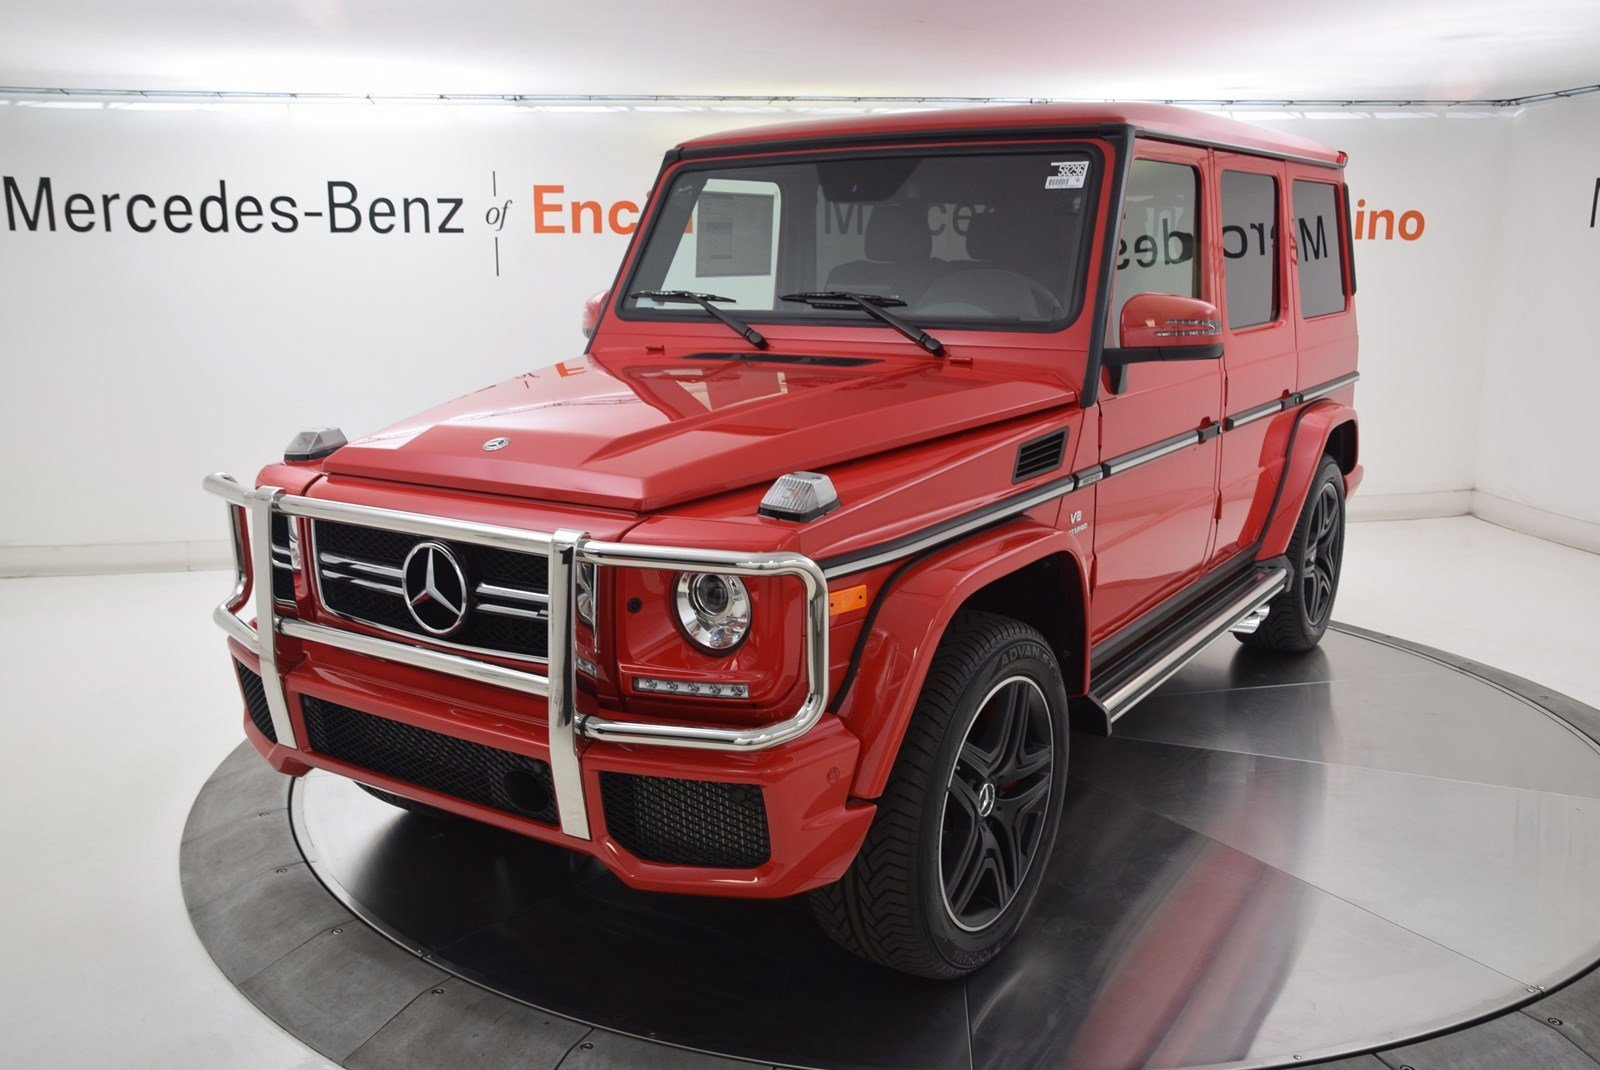 New 2018 mercedes benz g class amg g 63 suv suv in encino for Mercedes benz g class suv price